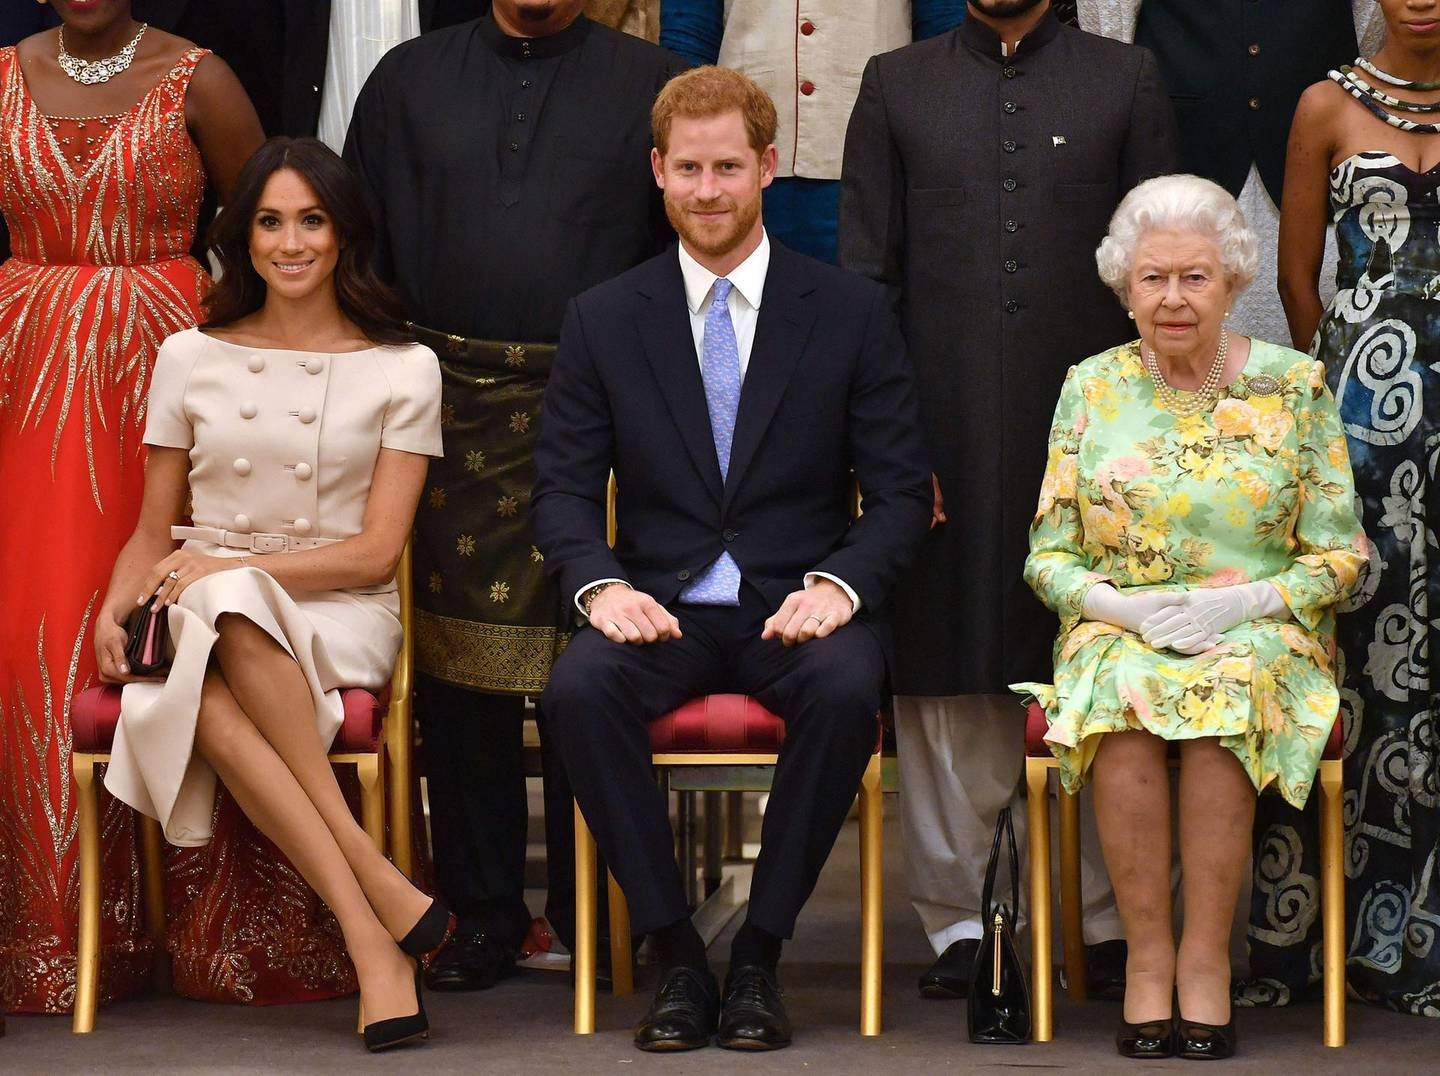 """(FILES) In this file photo taken on June 26, 2018 (L-R) Meghan, Duchess of Sussex, Britain's Prince Harry, Duke of Sussex and Britain's Queen Elizabeth II pose for a picture during the Queen's Young Leaders Awards Ceremony at Buckingham Palace in London.     Queen Elizabeth II is saddened by the challenges faced by her grandson Prince Harry and his wife Meghan, and takes their allegations of racism in the royal family seriously, Buckingham Palace said on March 9, 2021. """"The whole family is saddened to learn the full extent of how challenging the last few years have been for Harry and Meghan. The issues raised, particularly that of race, are concerning,"""" the palace said in a statement released on the queen's behalf. / AFP / POOL / John Stillwell"""